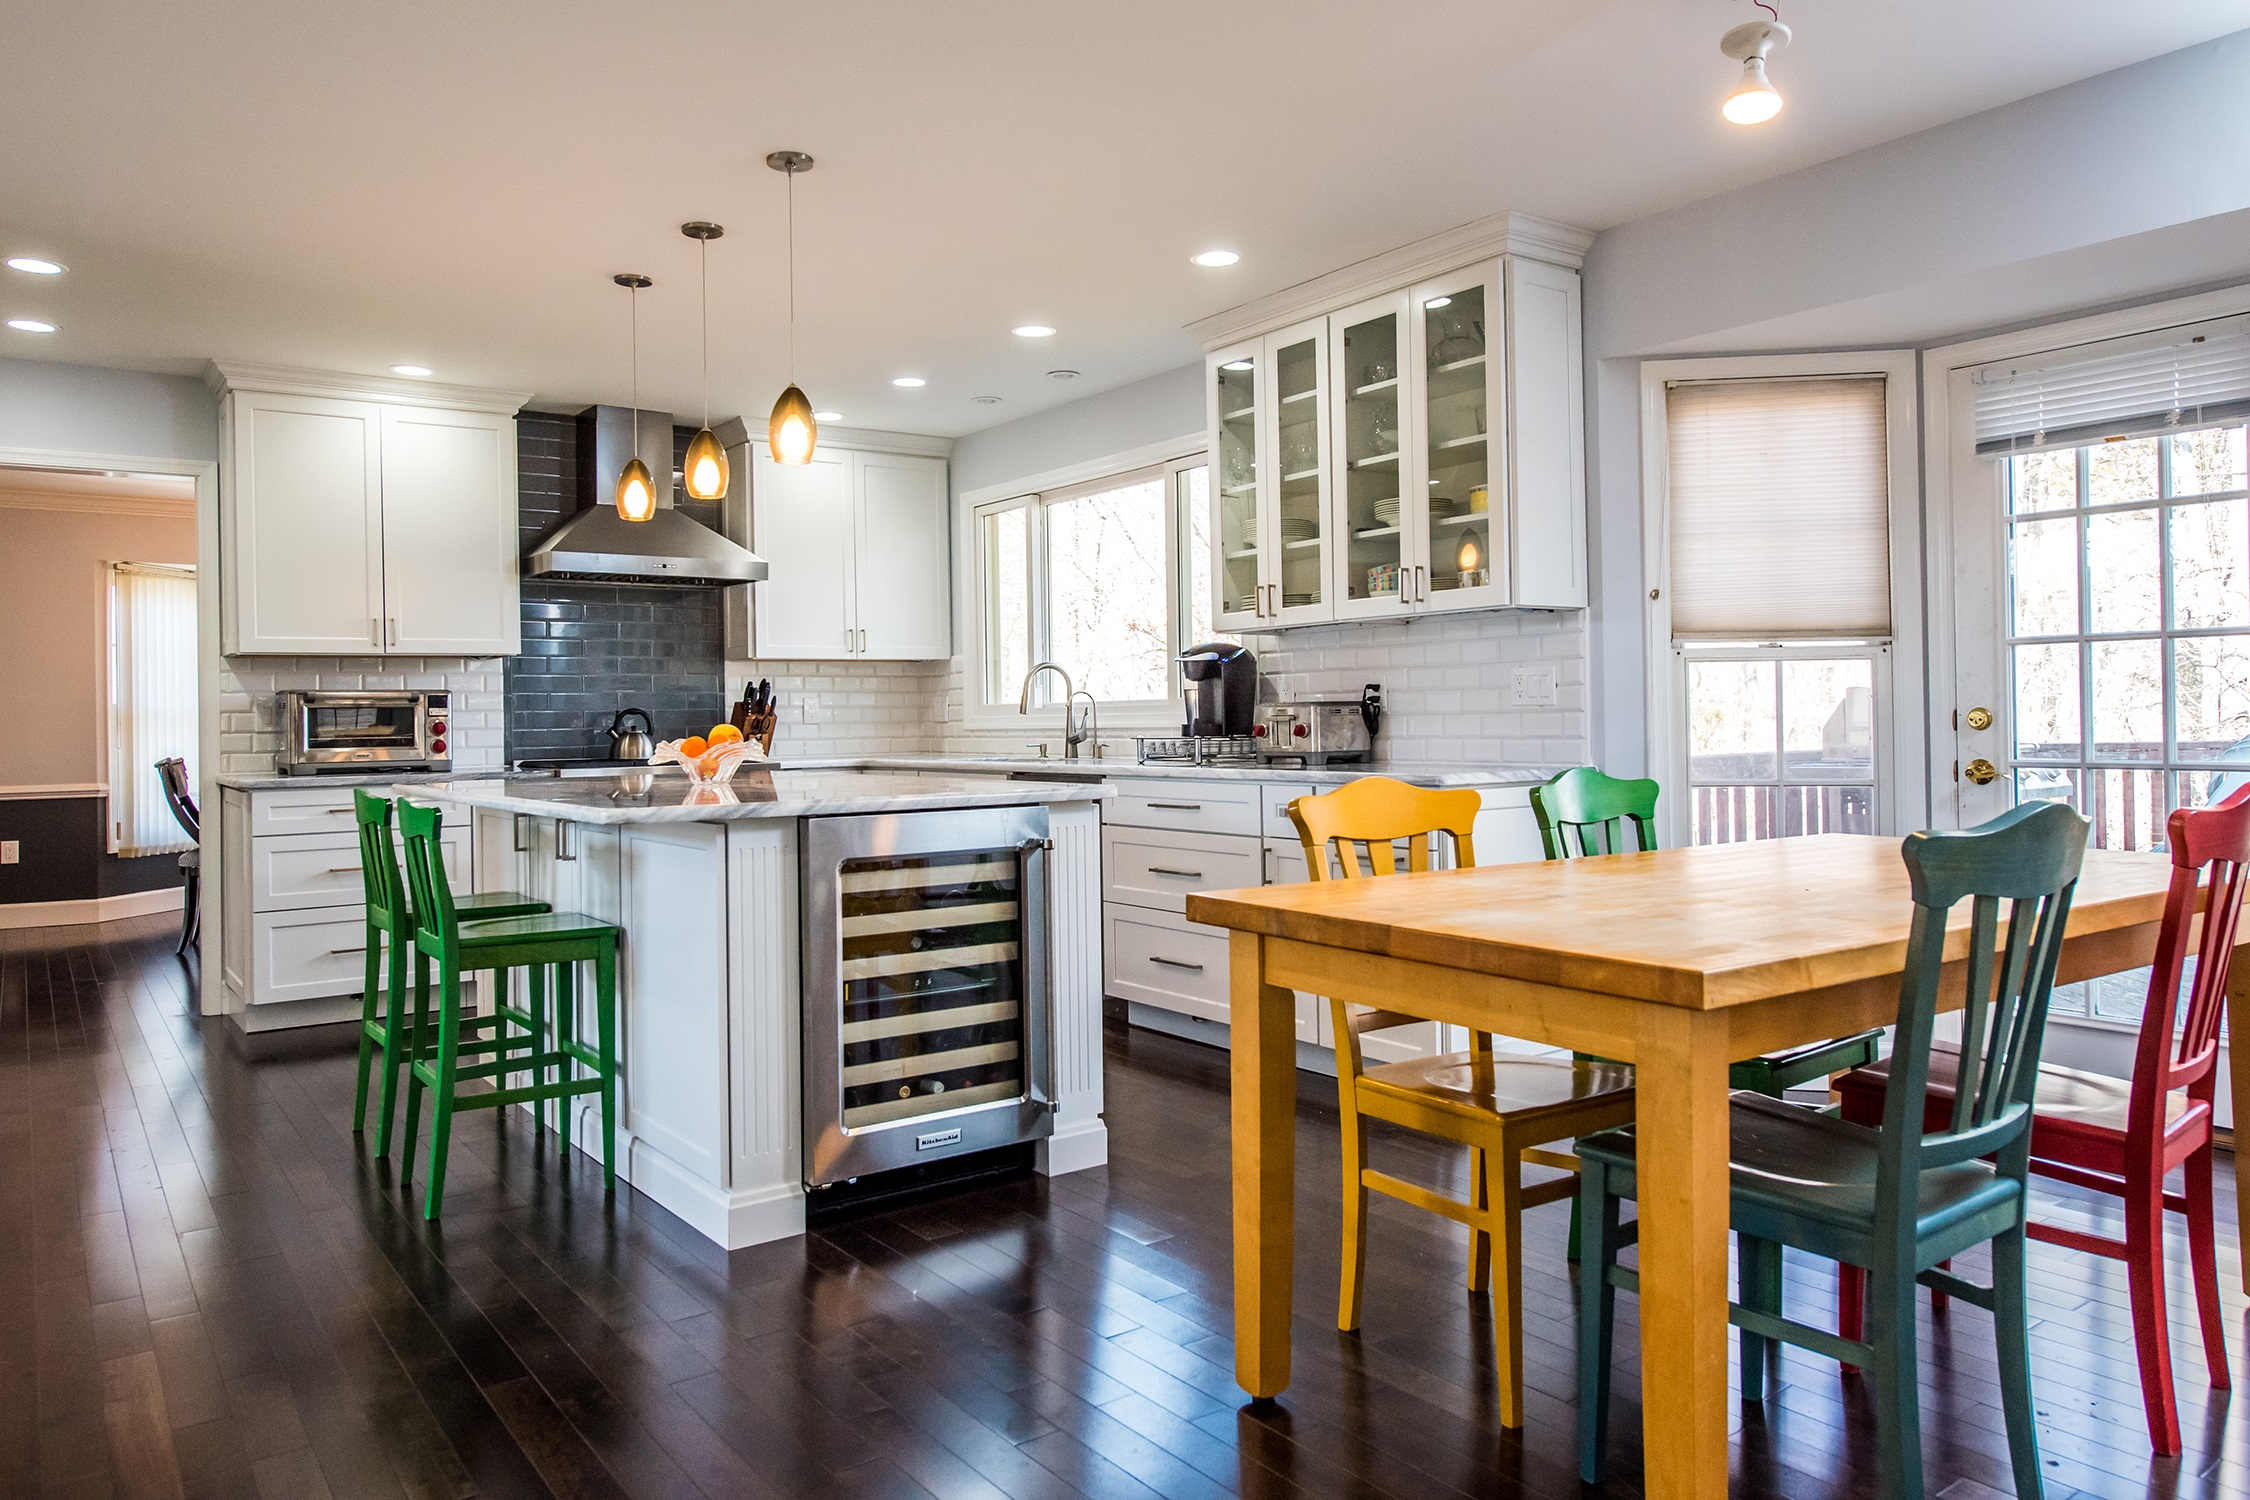 Gorgeous Kitchen Renovation In Potomac Maryland: Kitchen Remodel Gaithersburg Md